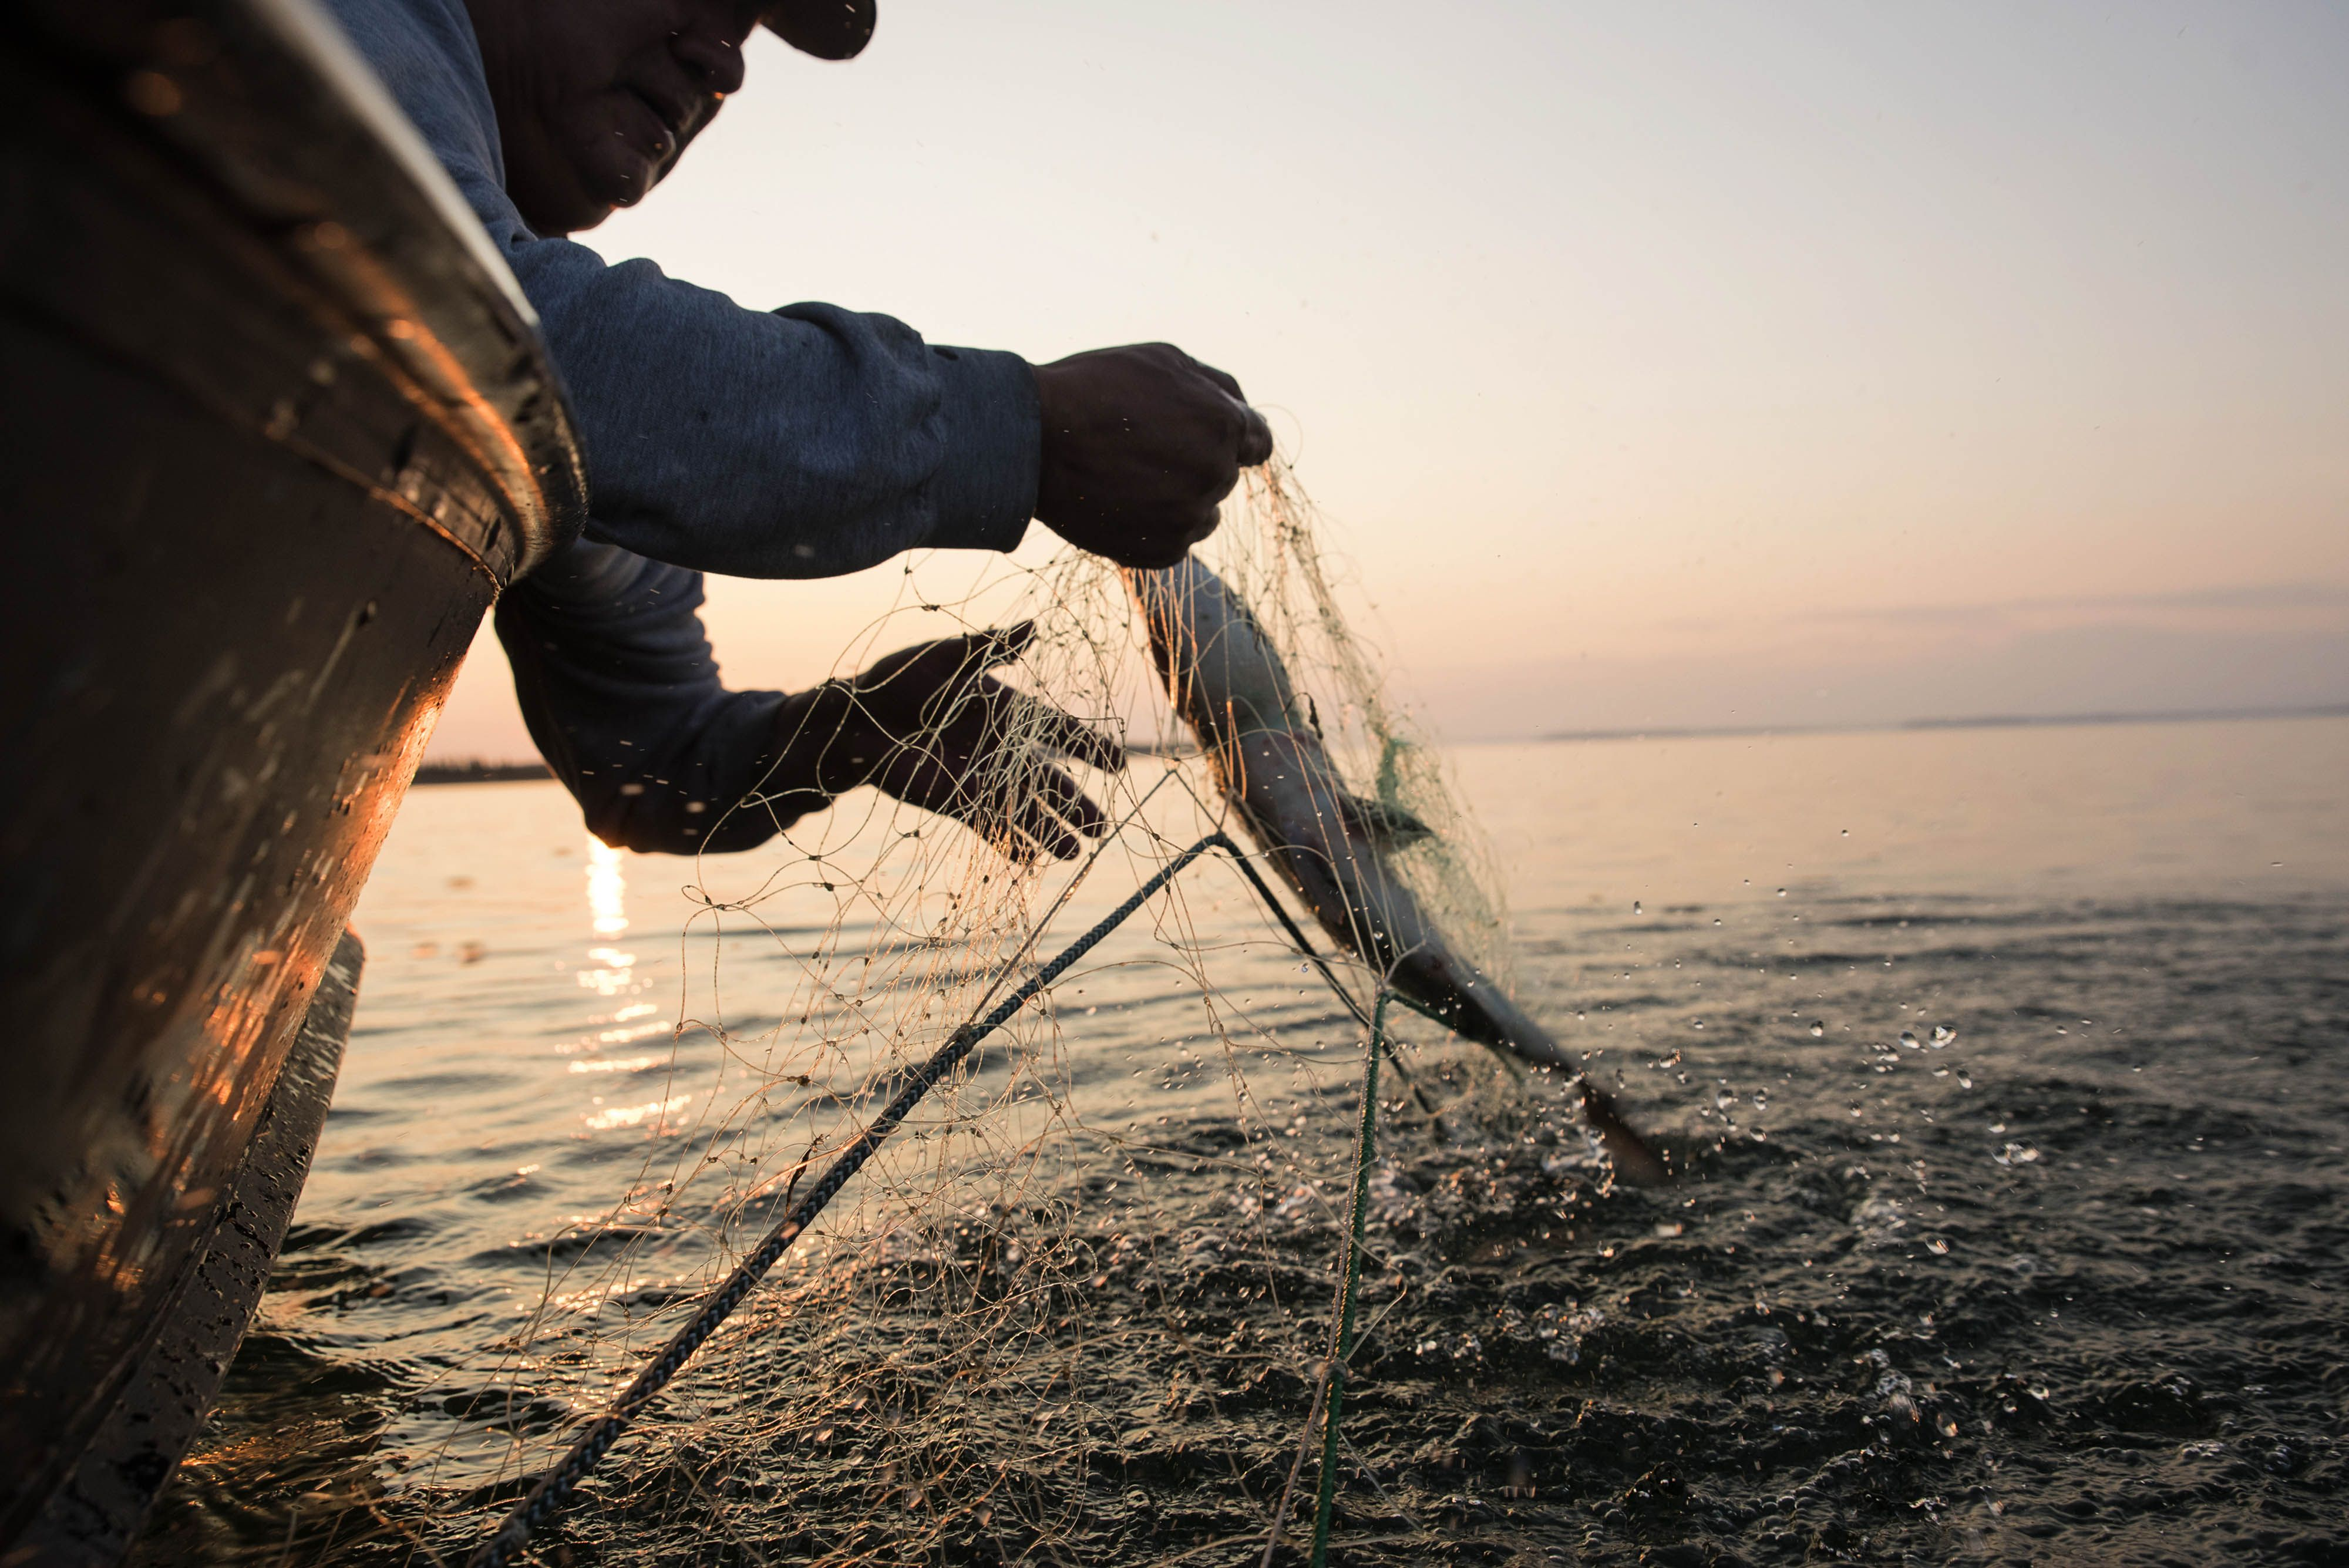 view of a man's hand pulling a salmon in a fishing net out of the water